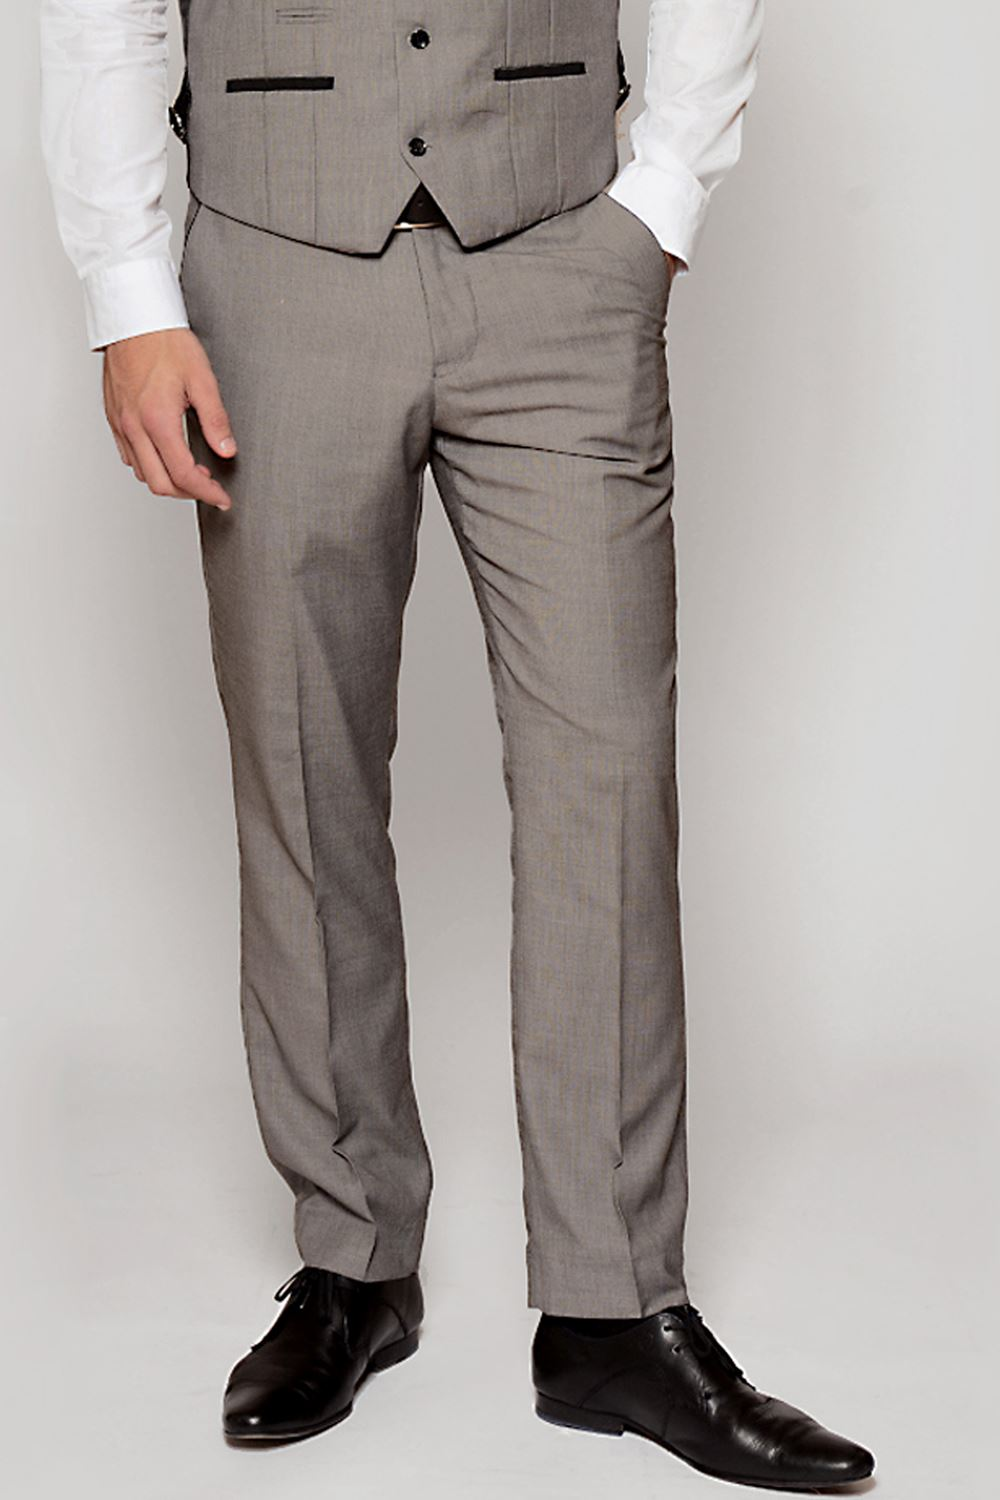 Mens Formal Suit Trousers Marc Darcy Flat Front Office Work Fashion Pants